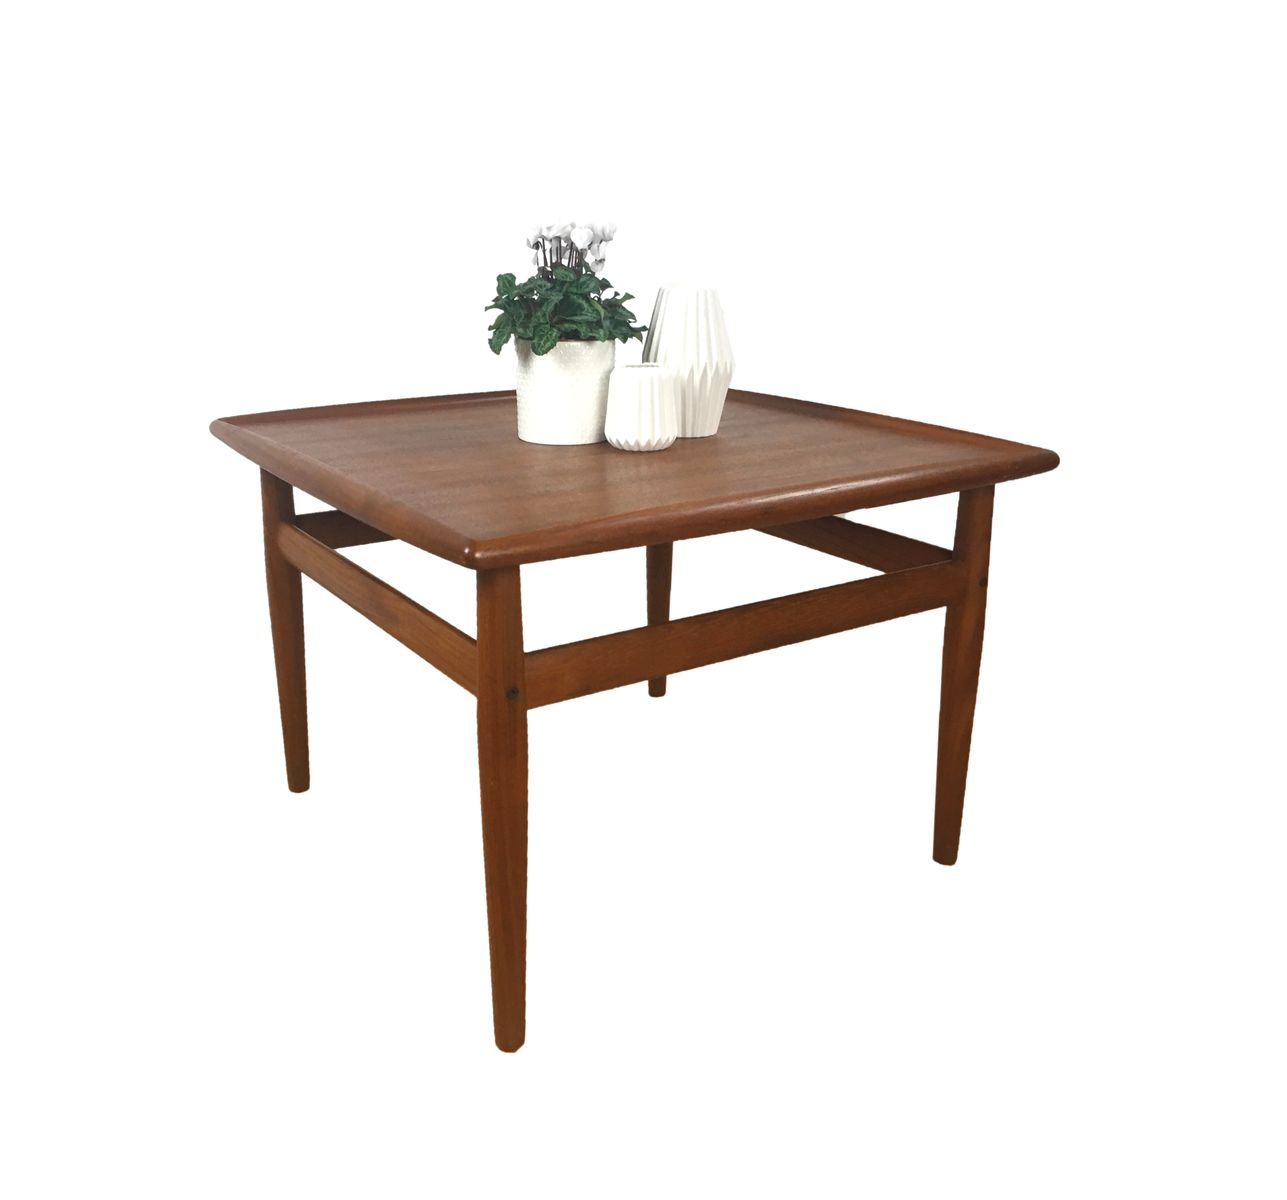 Old Teak Coffee Table: Vintage Teak Coffee Table By Grete Jalk For Glostrup